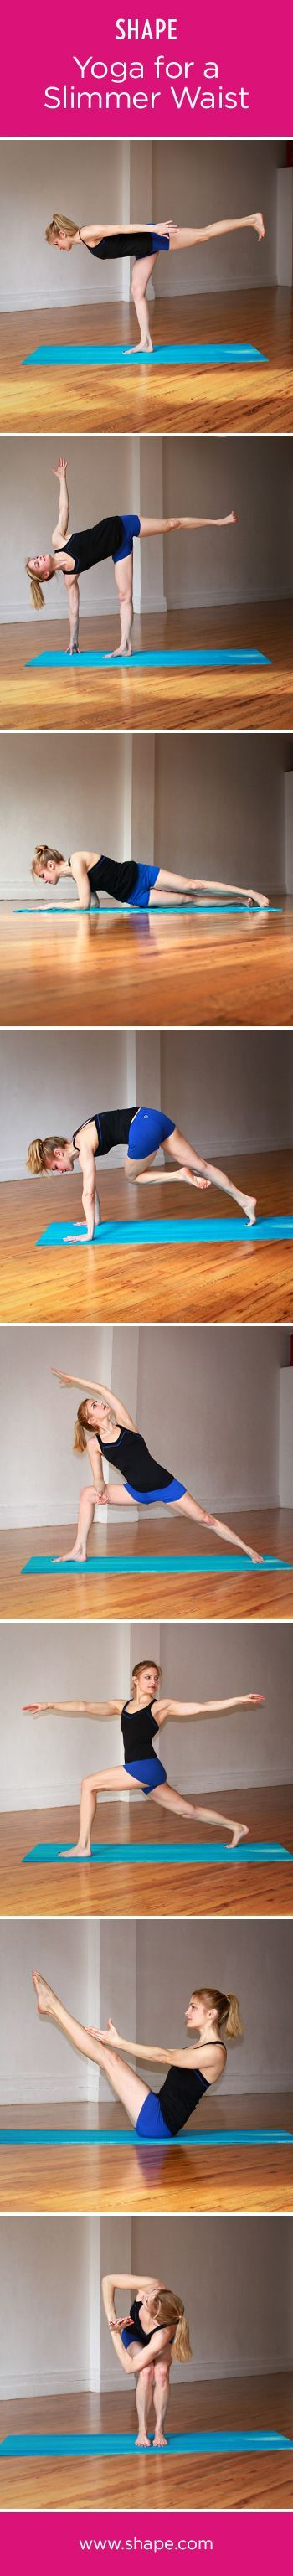 Eight poses to a trimmer tummy!